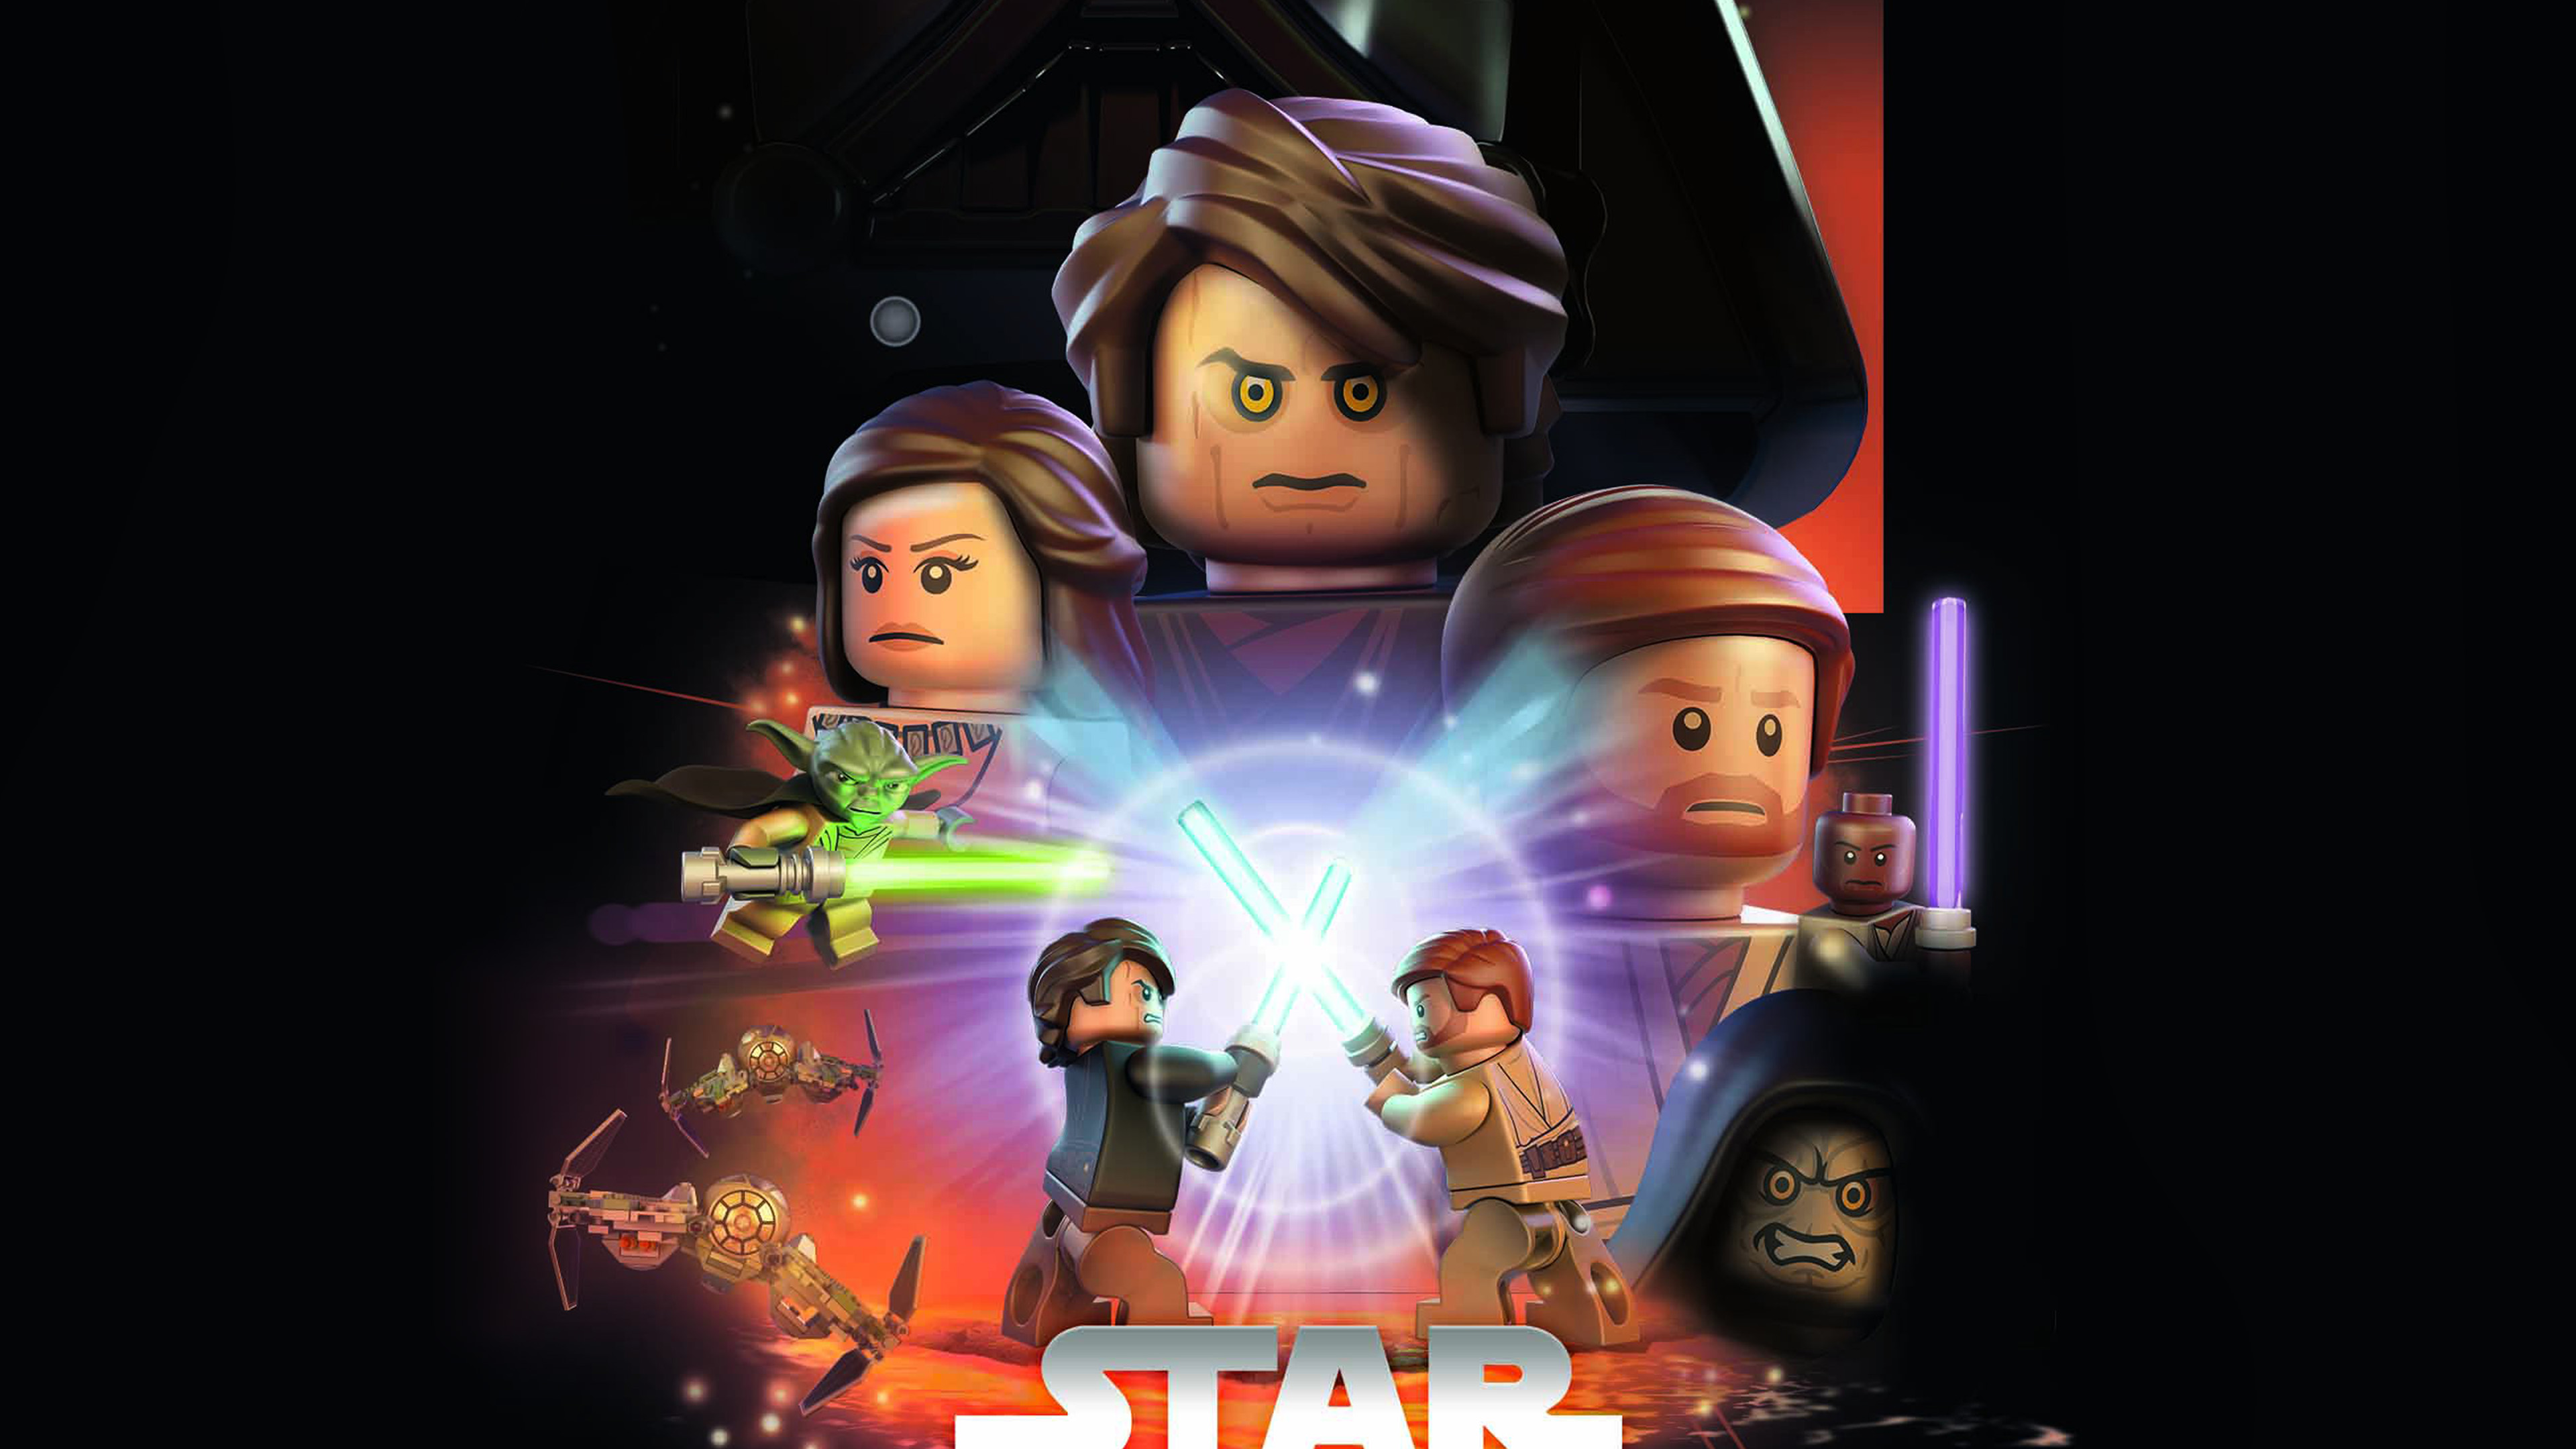 wallpaper for desktop, laptop ap22 starwars lego episode 3